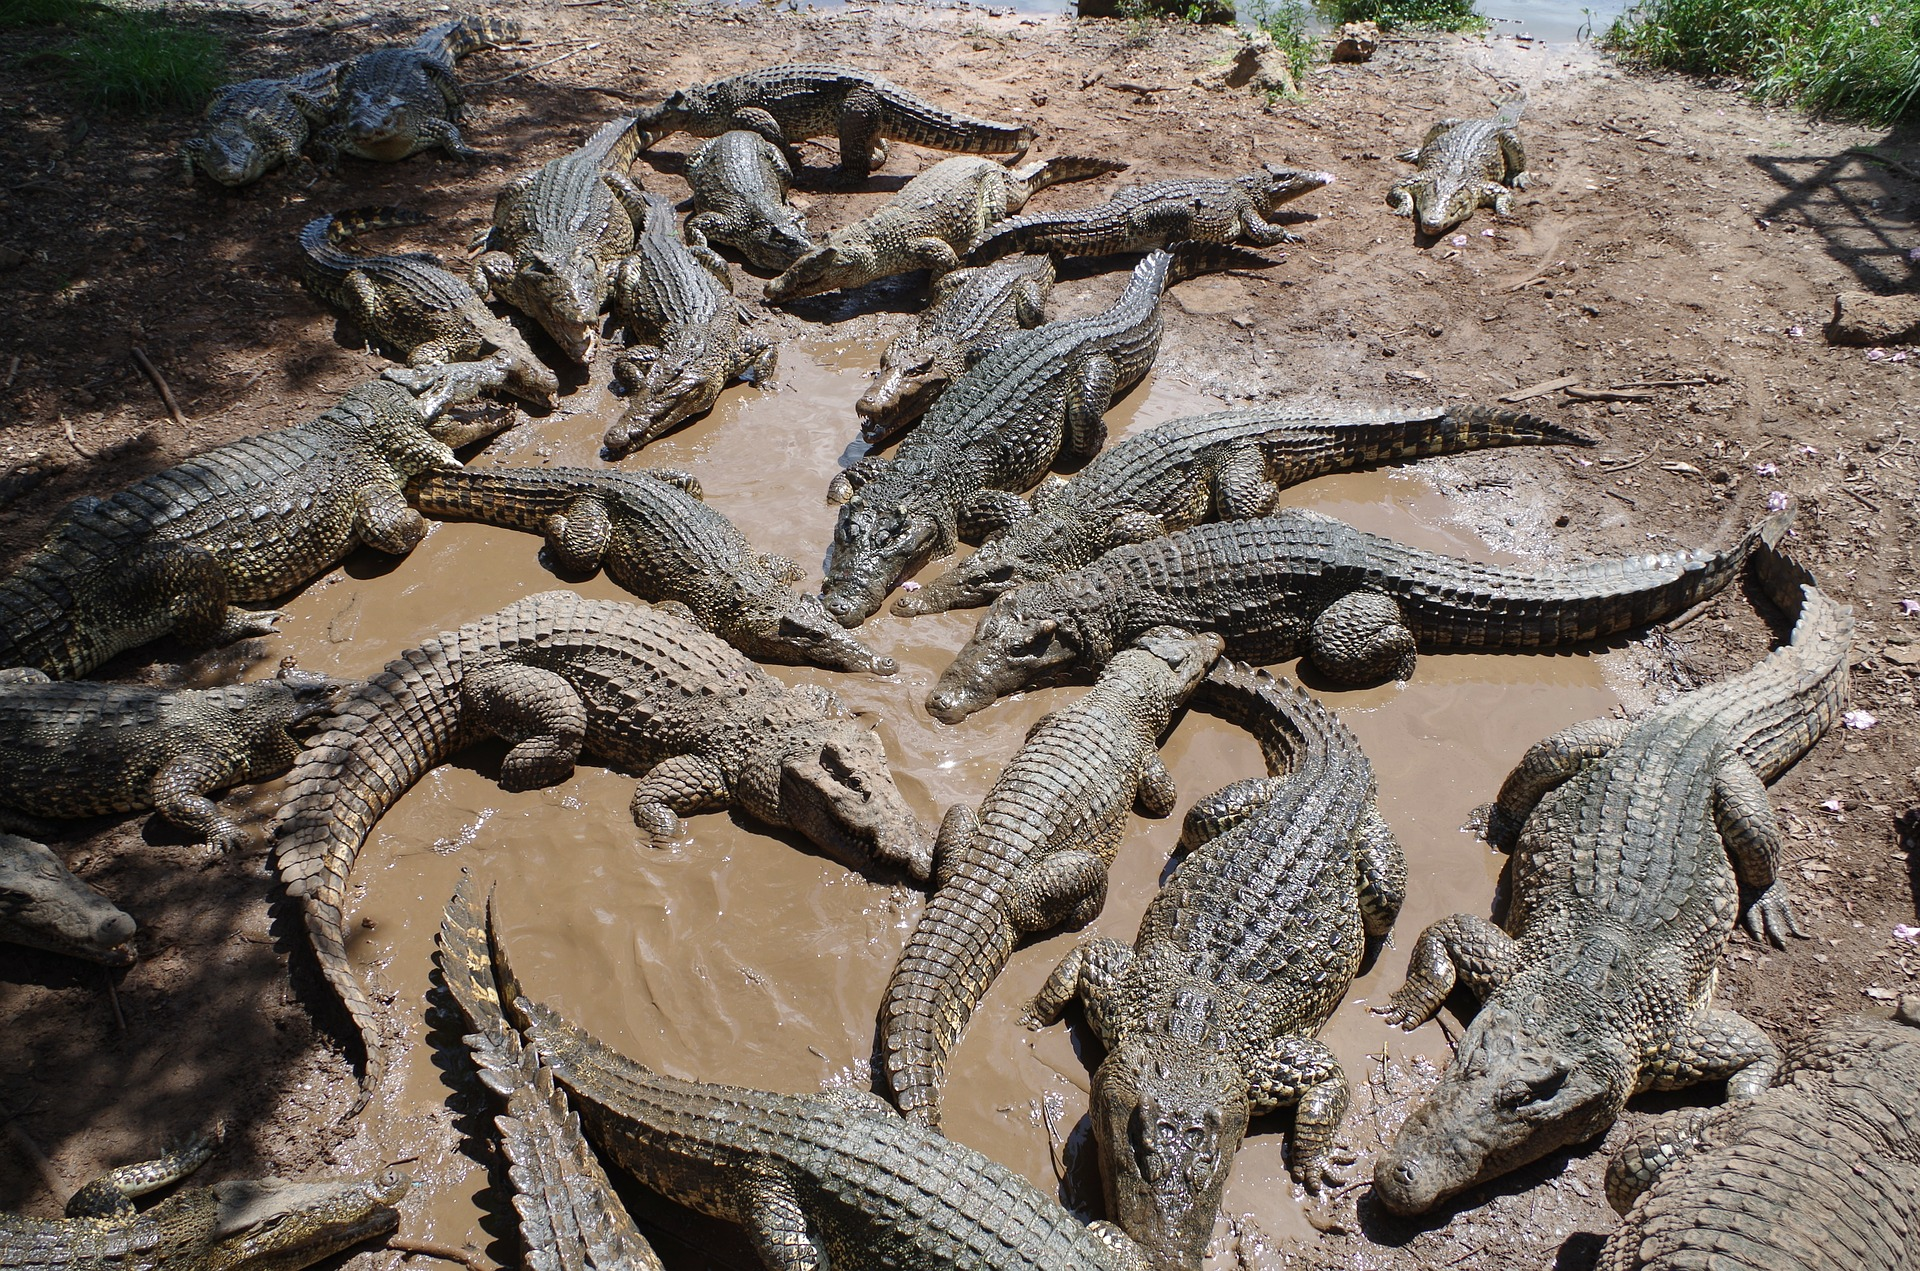 A Brush with Death: Swimming with Crocodiles